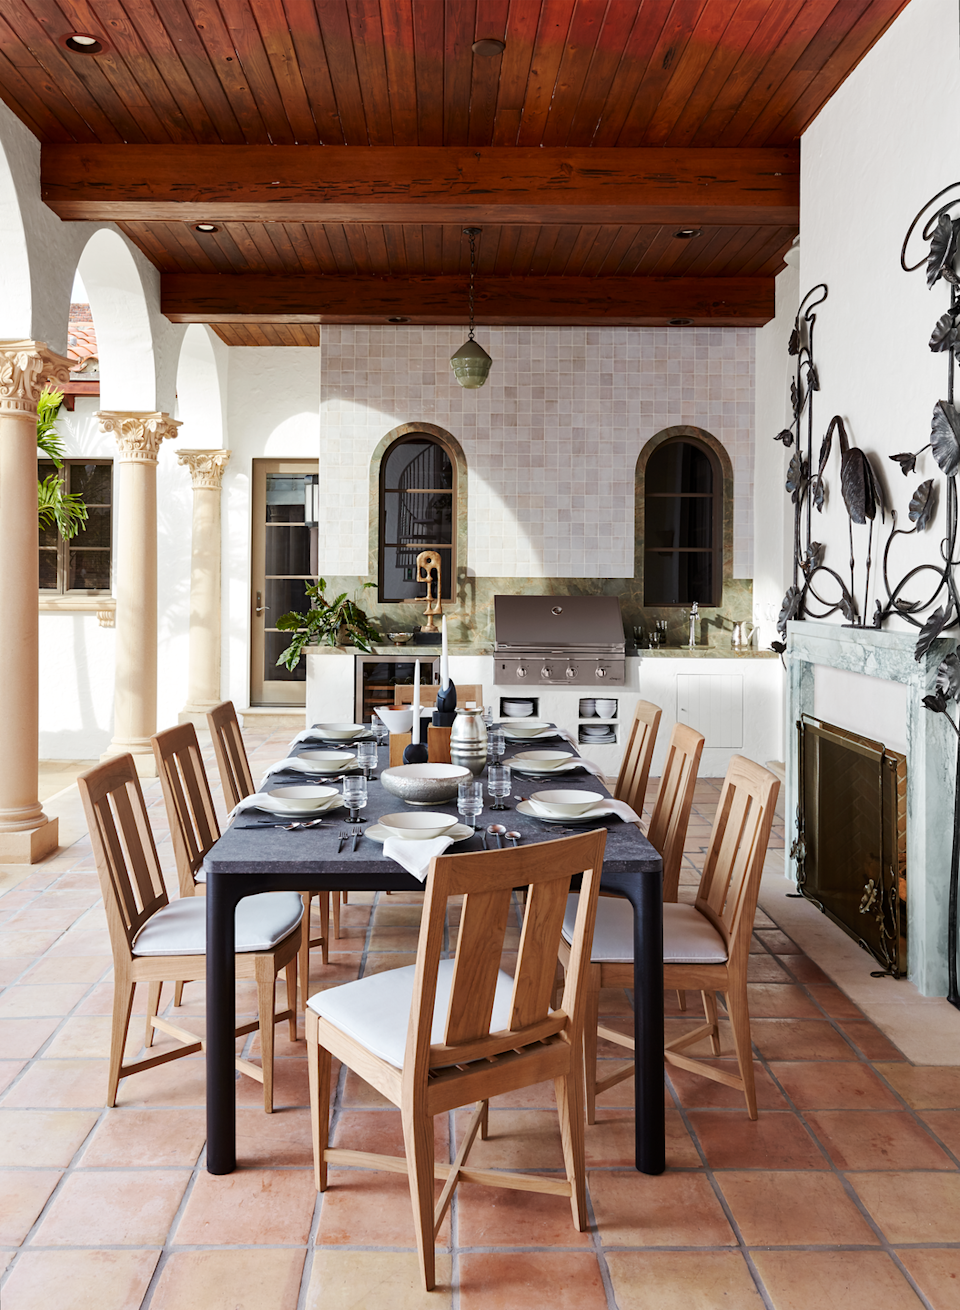 """<p>This Mediterranean-inspired outdoor kitchen and dining space was designed for the <a href=""""https://www.veranda.com/decorating-ideas/g26025165/inside-kips-bay-decorator-show-house/"""" rel=""""nofollow noopener"""" target=""""_blank"""" data-ylk=""""slk:Kips Bay Palm Beach Show House"""" class=""""link rapid-noclick-resp"""">Kips Bay Palm Beach Show House</a> in 2019. California-based designer <a href=""""https://amymeier.com/"""" rel=""""nofollow noopener"""" target=""""_blank"""" data-ylk=""""slk:Amy Meier"""" class=""""link rapid-noclick-resp"""">Amy Meier</a> makes the most of this small space by focusing on the priorities: a stainless grill, sink, built-ins for housing dinnerware, and a wine fridge.</p>"""